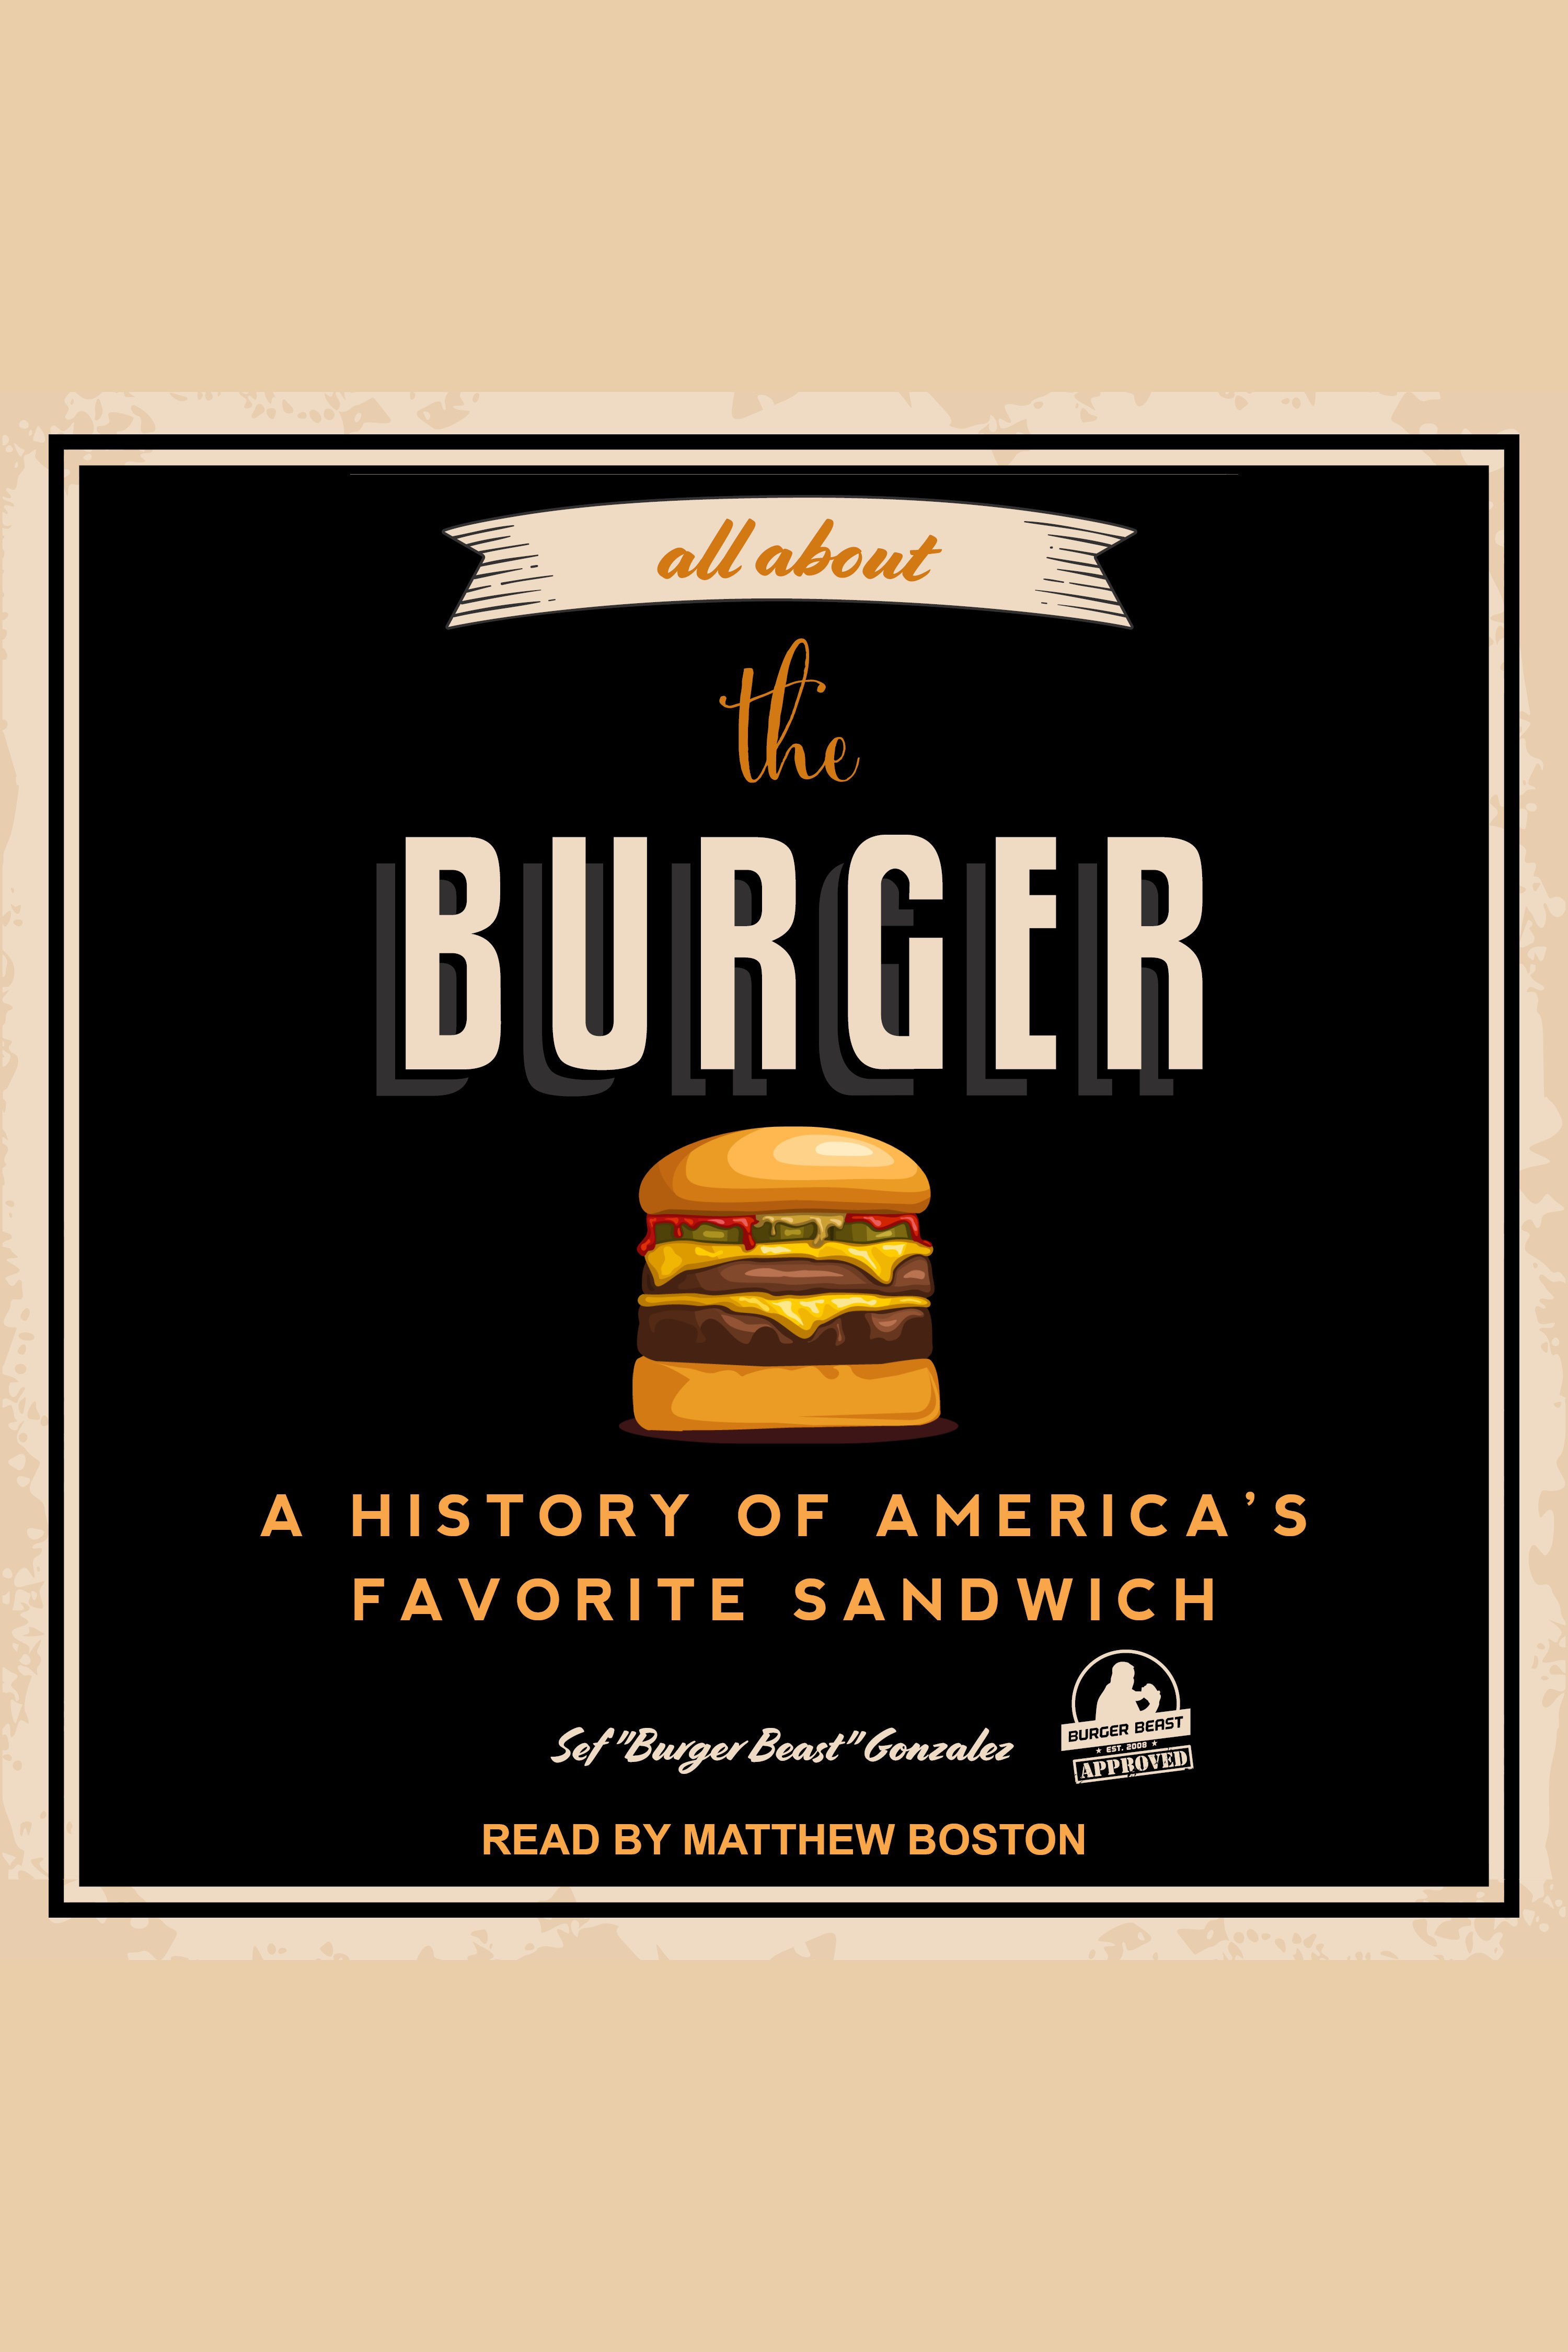 All About the Burger A History of America's Favorite Sandwich